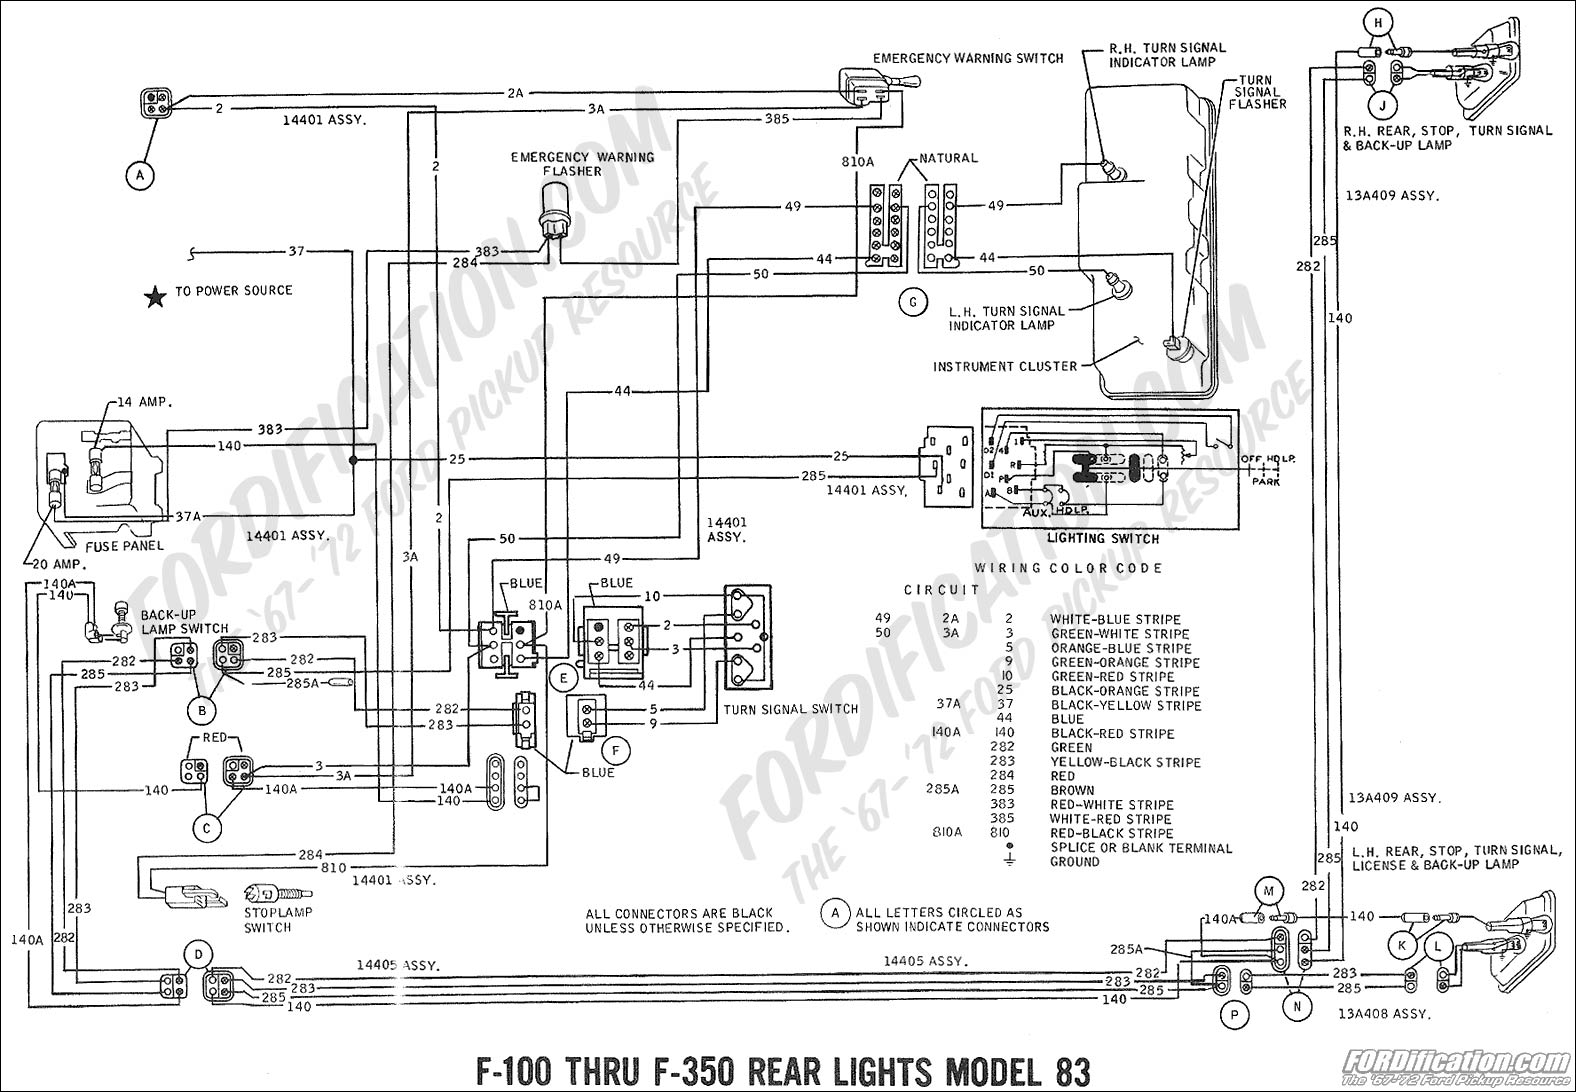 1969 Ford Truck Wiring - Ford F 250 5 4 Fuse Diagram for Wiring Diagram  SchematicsWiring Diagram Schematics